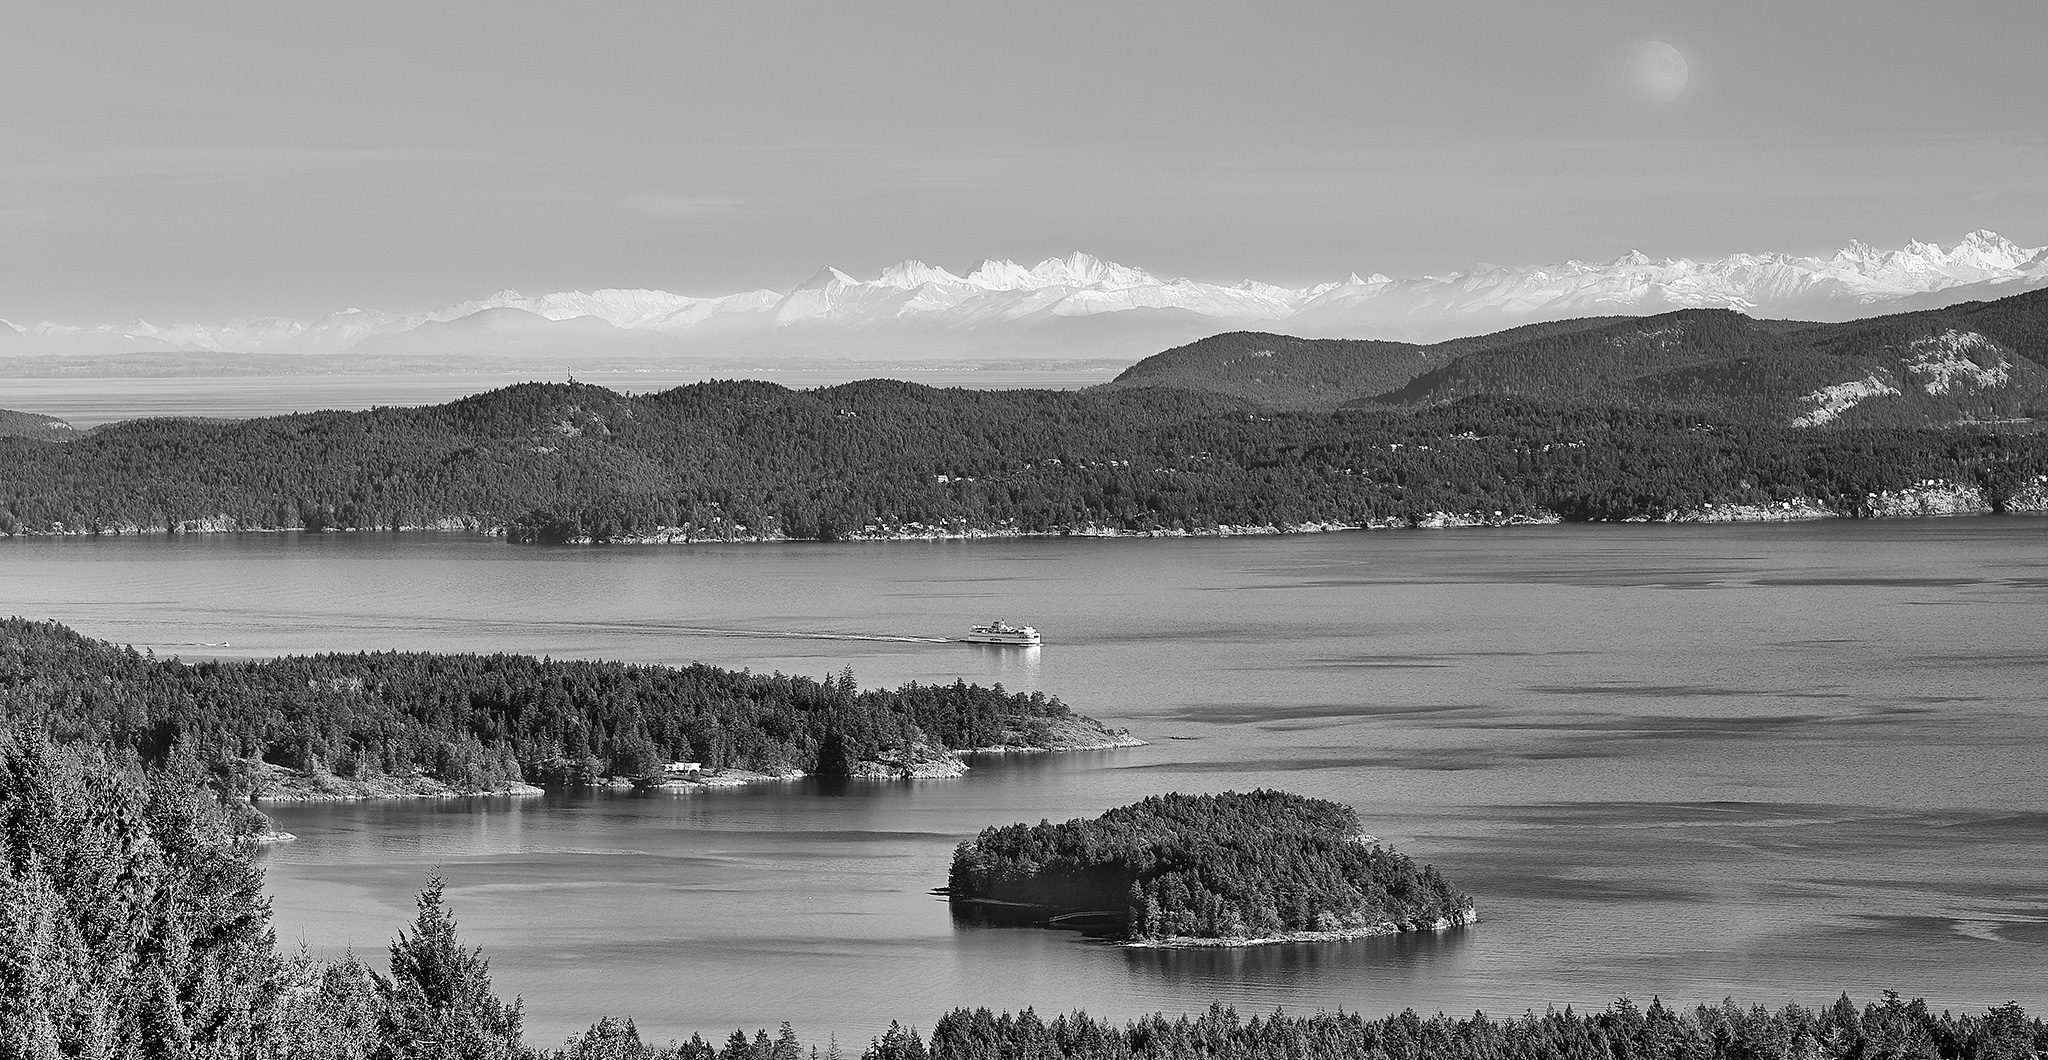 Winter Day, From Salt Spring Island